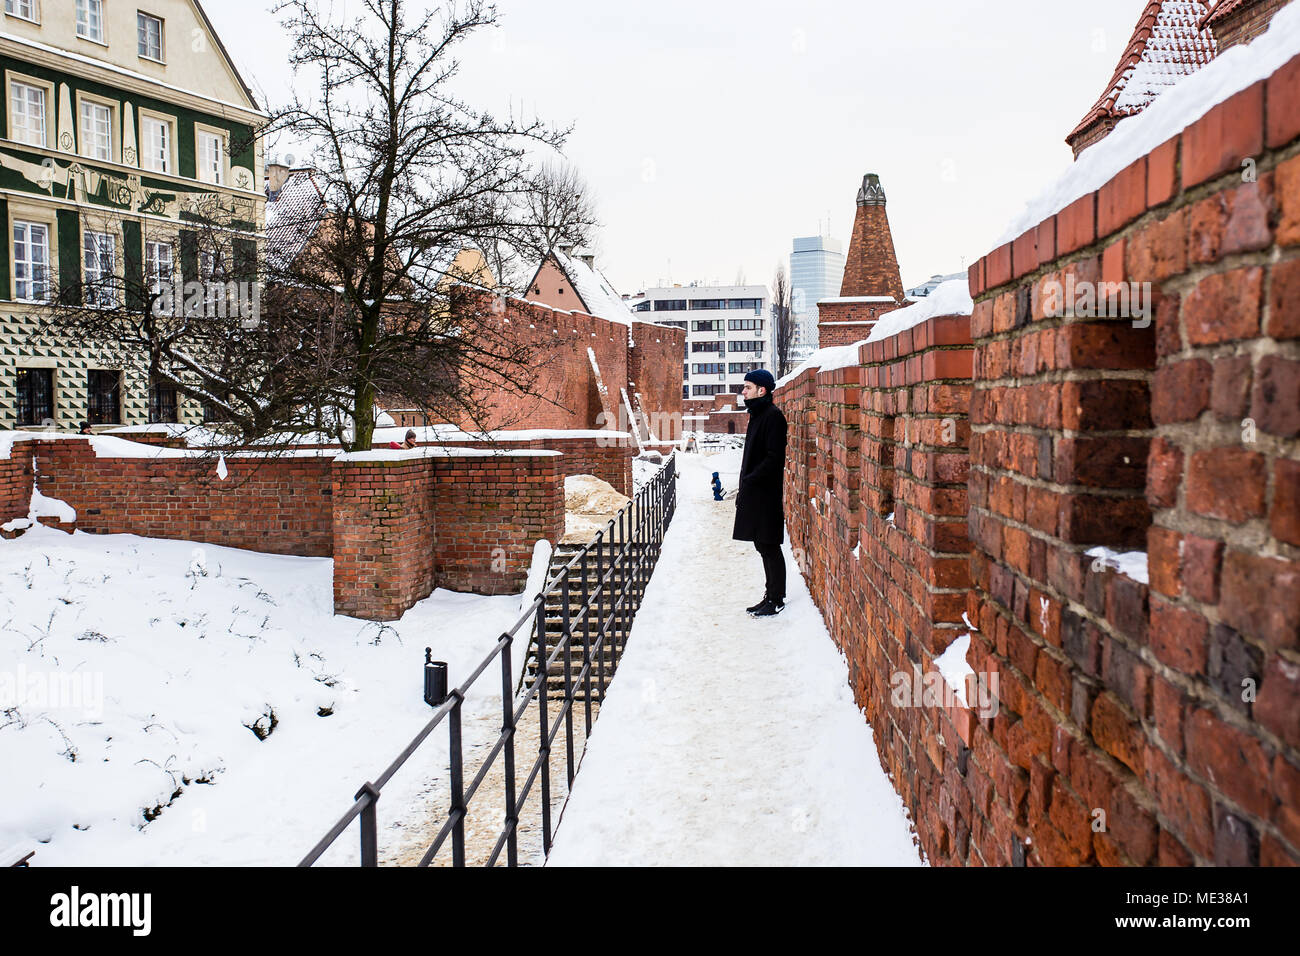 man standing against Warsaw barbican wall, looking out over the snow after snow storm. Warsaw, Poland - Stock Image